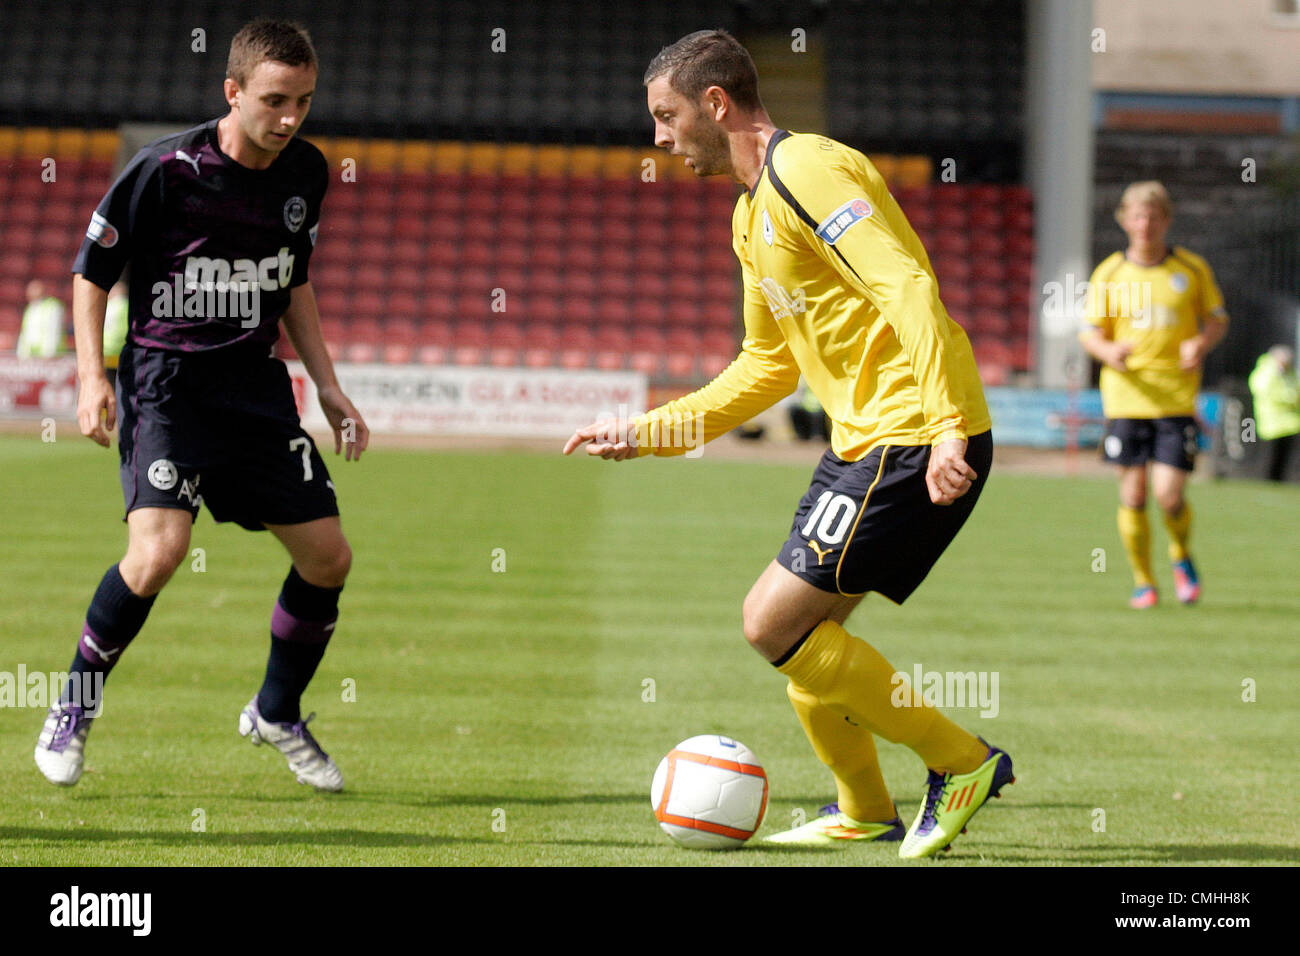 11th Aug 2012. 11.08.2012 Glasgow, Scotland. 10 Andy Hawarth and 7 Steven Lawless in action during the Scottish - Stock Image